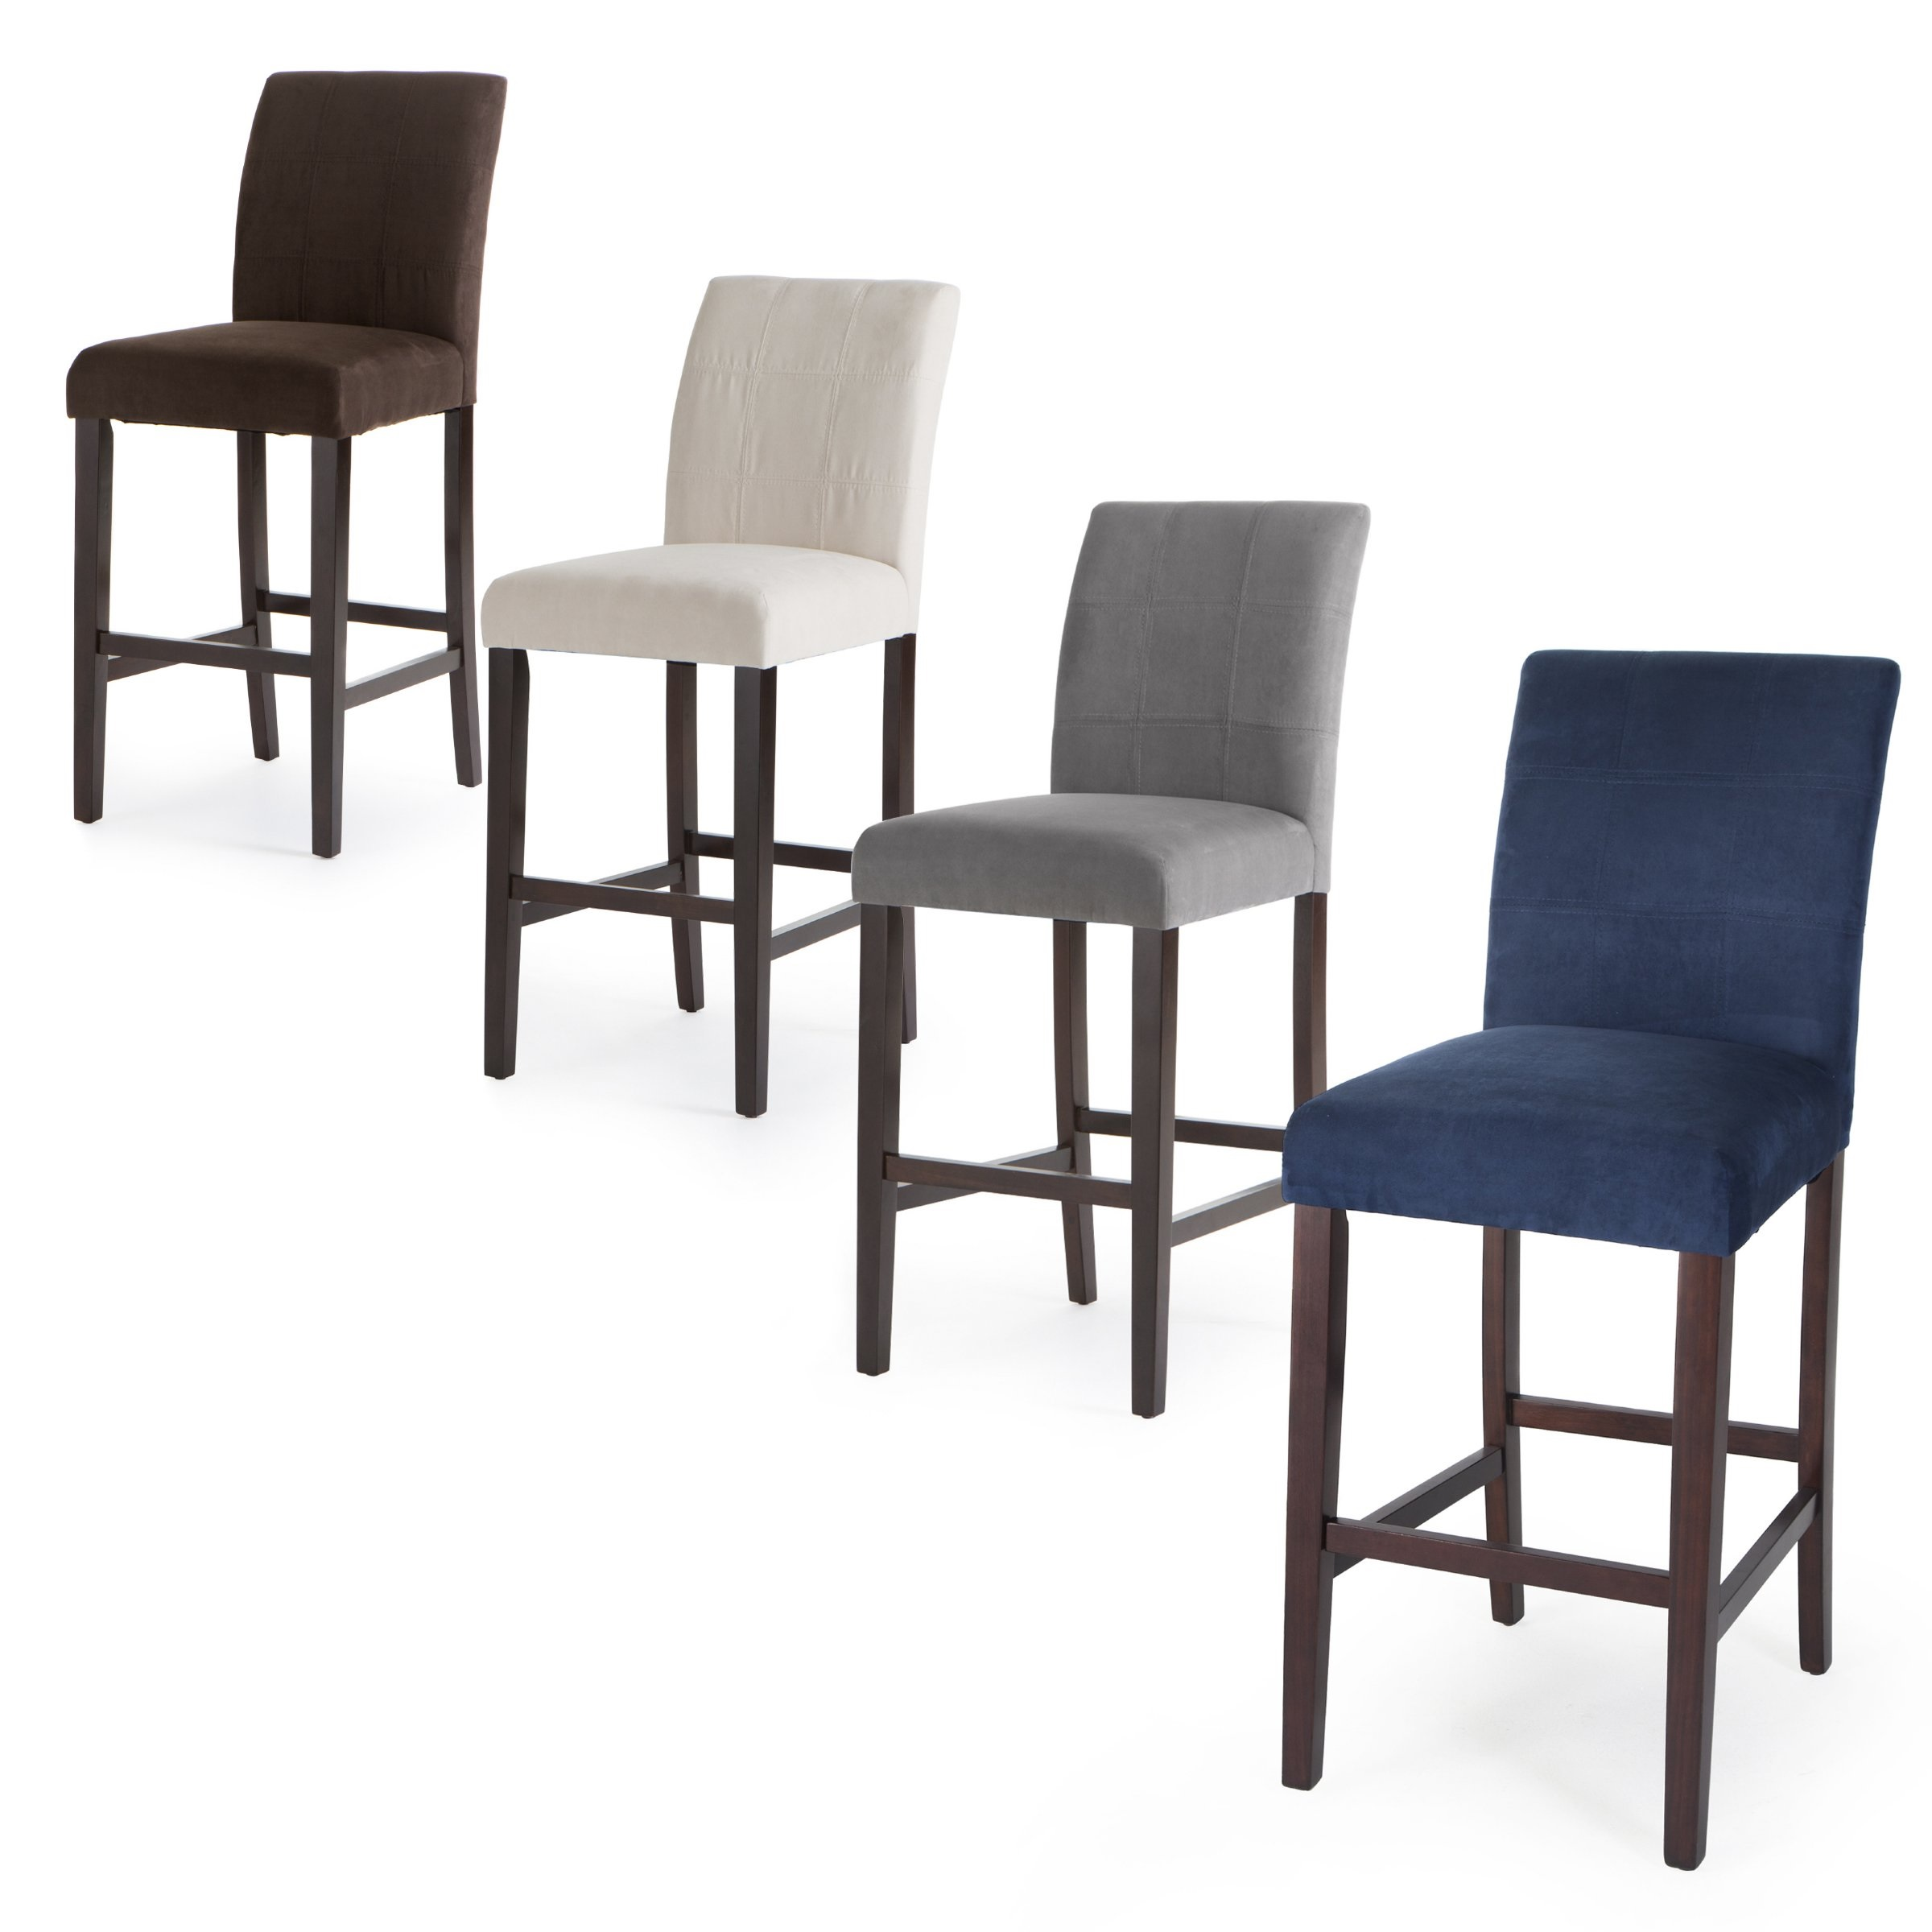 Palazzo 30 Inch Bar Stool 1 Costa Rican Furniture